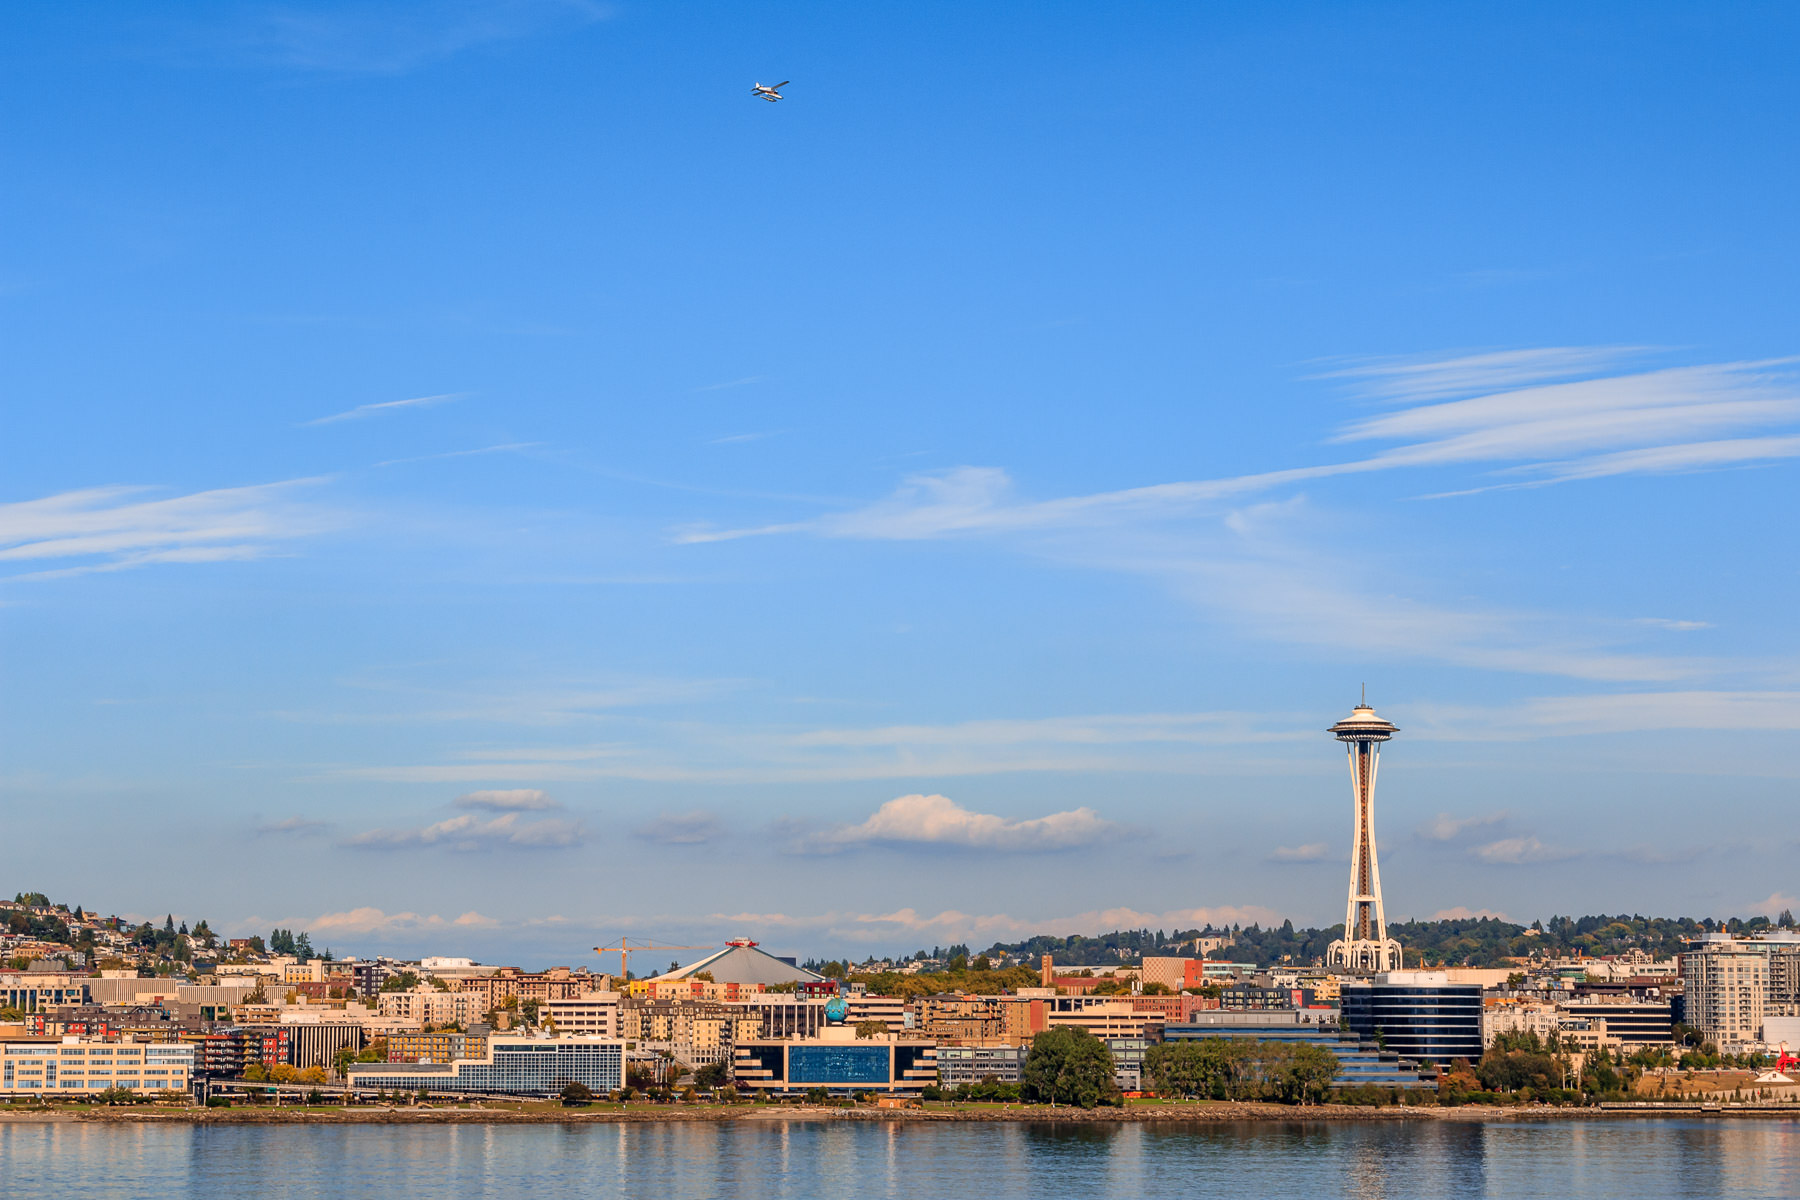 A seaplane flies over Seattle's Queen Anne neighborhood.